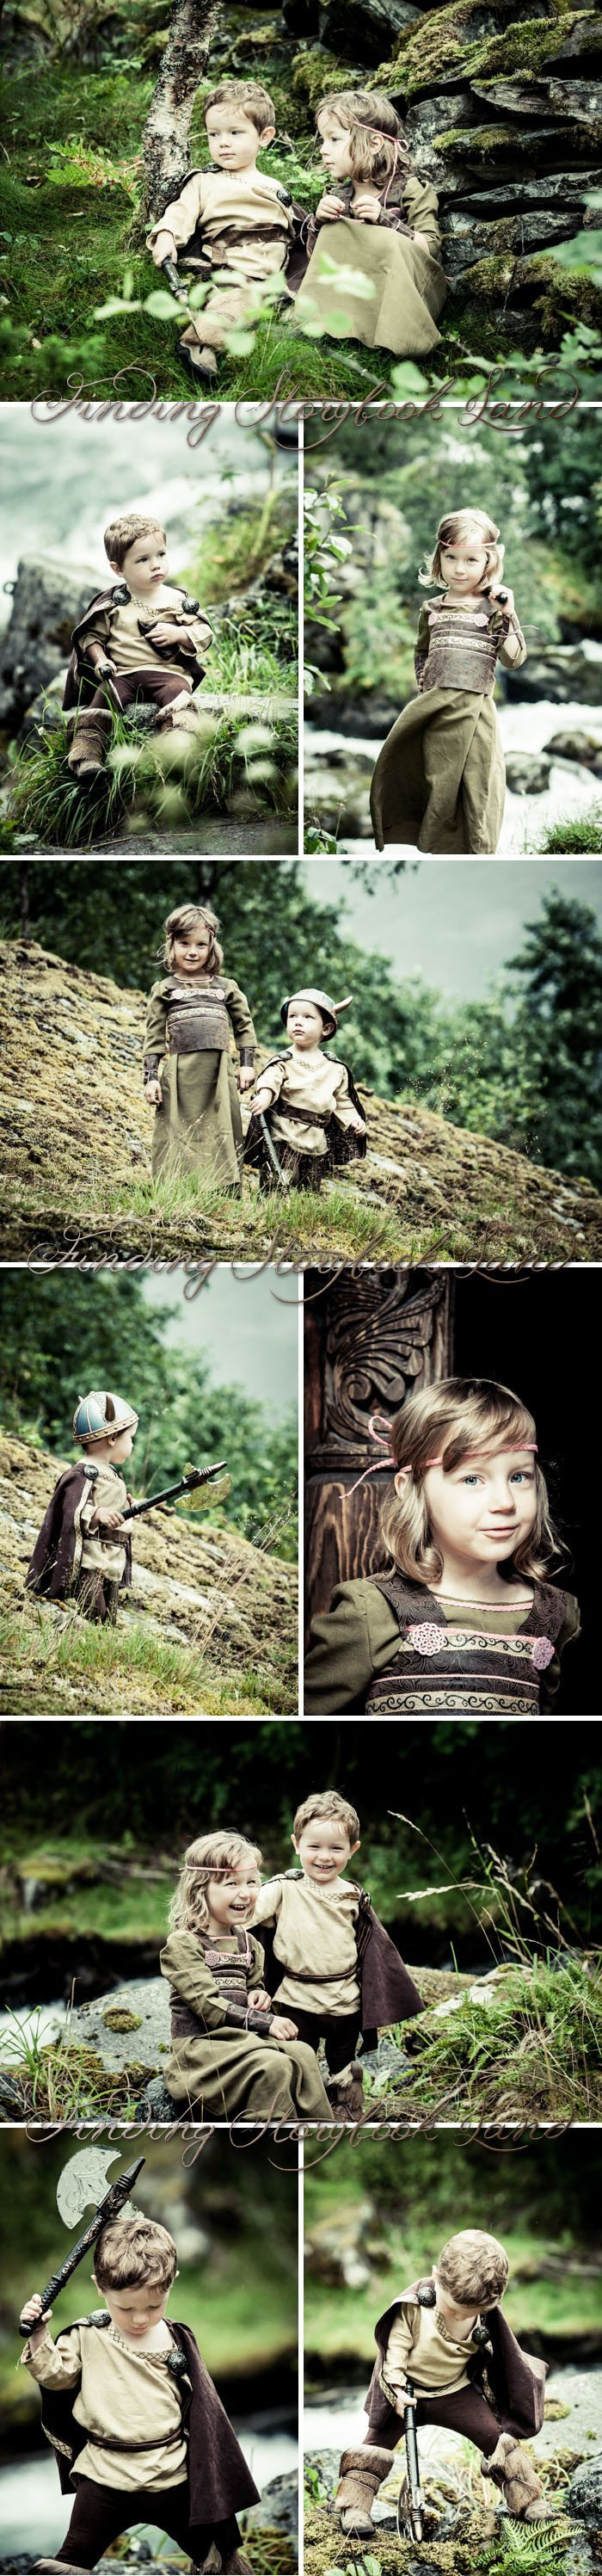 Viking themed stylized children's photo shoot guide